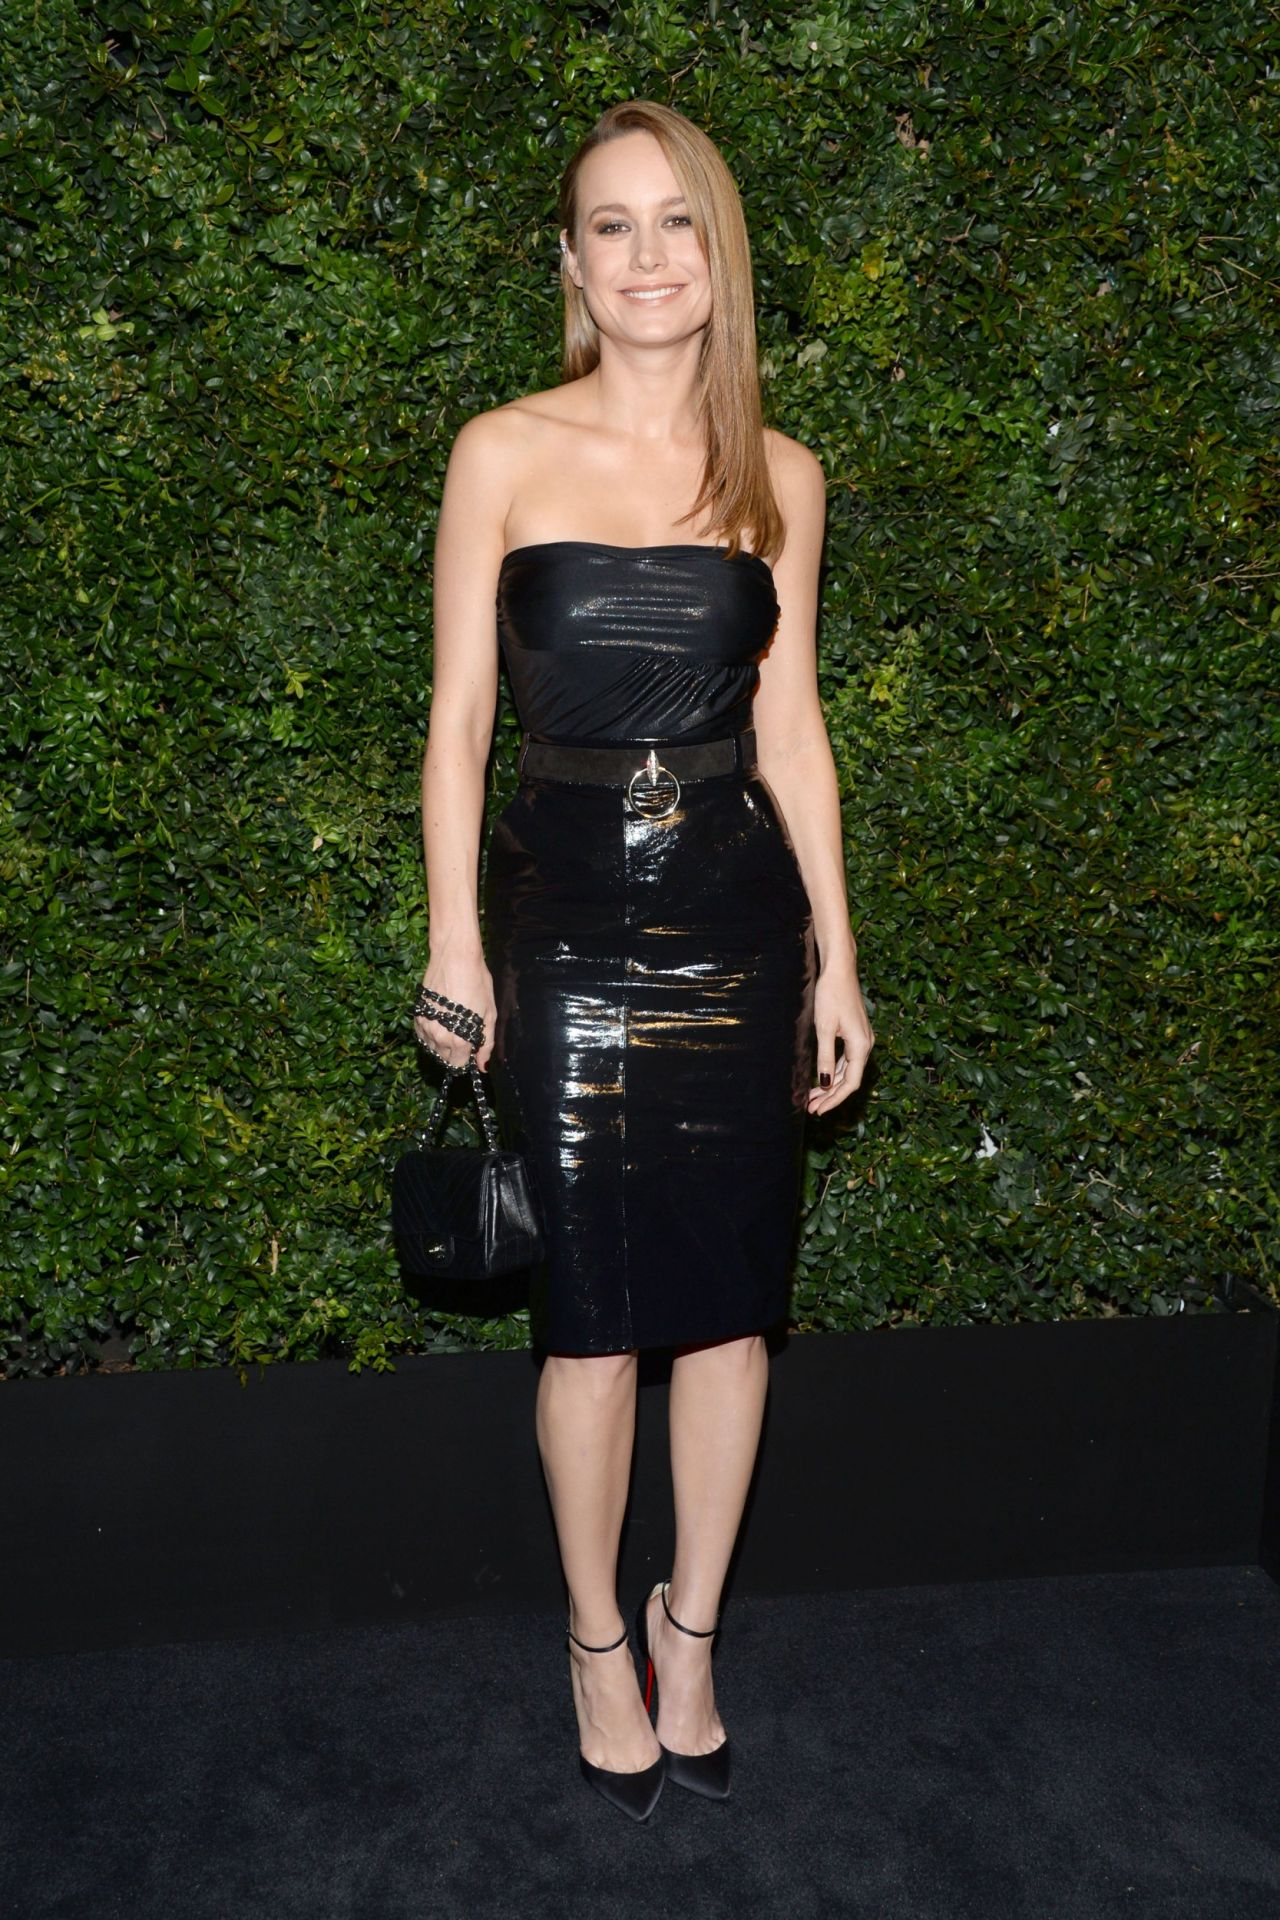 brie-larson-chanel-and-charles-finch-oscar-party-in-los-angeles-ca-2-27-2016-2